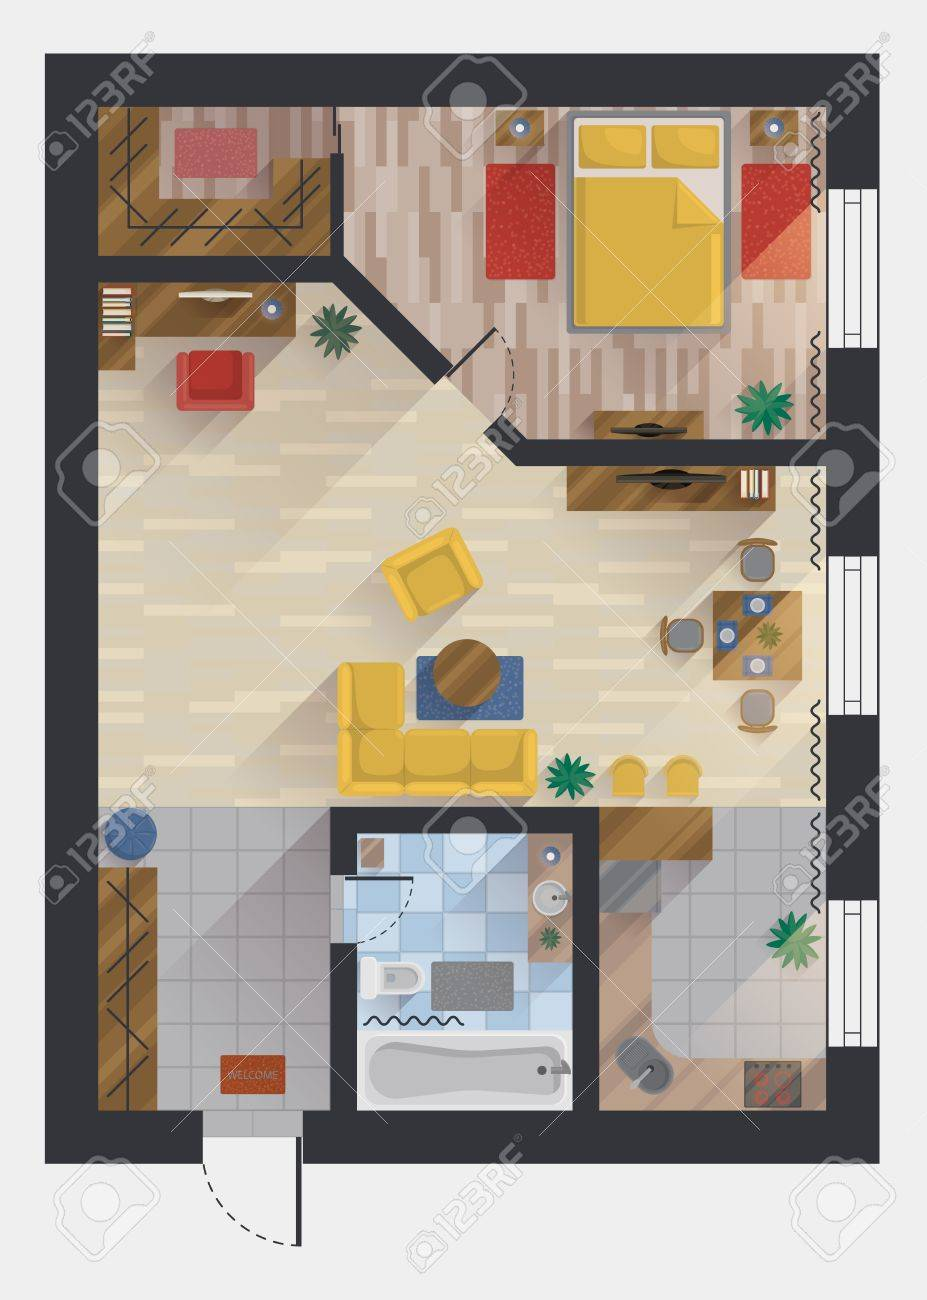 Apartment or flat  house or floor plan design top view  Planning or  designing studio. Apartment Or Flat  House Or Floor Plan Design Top View  Planning